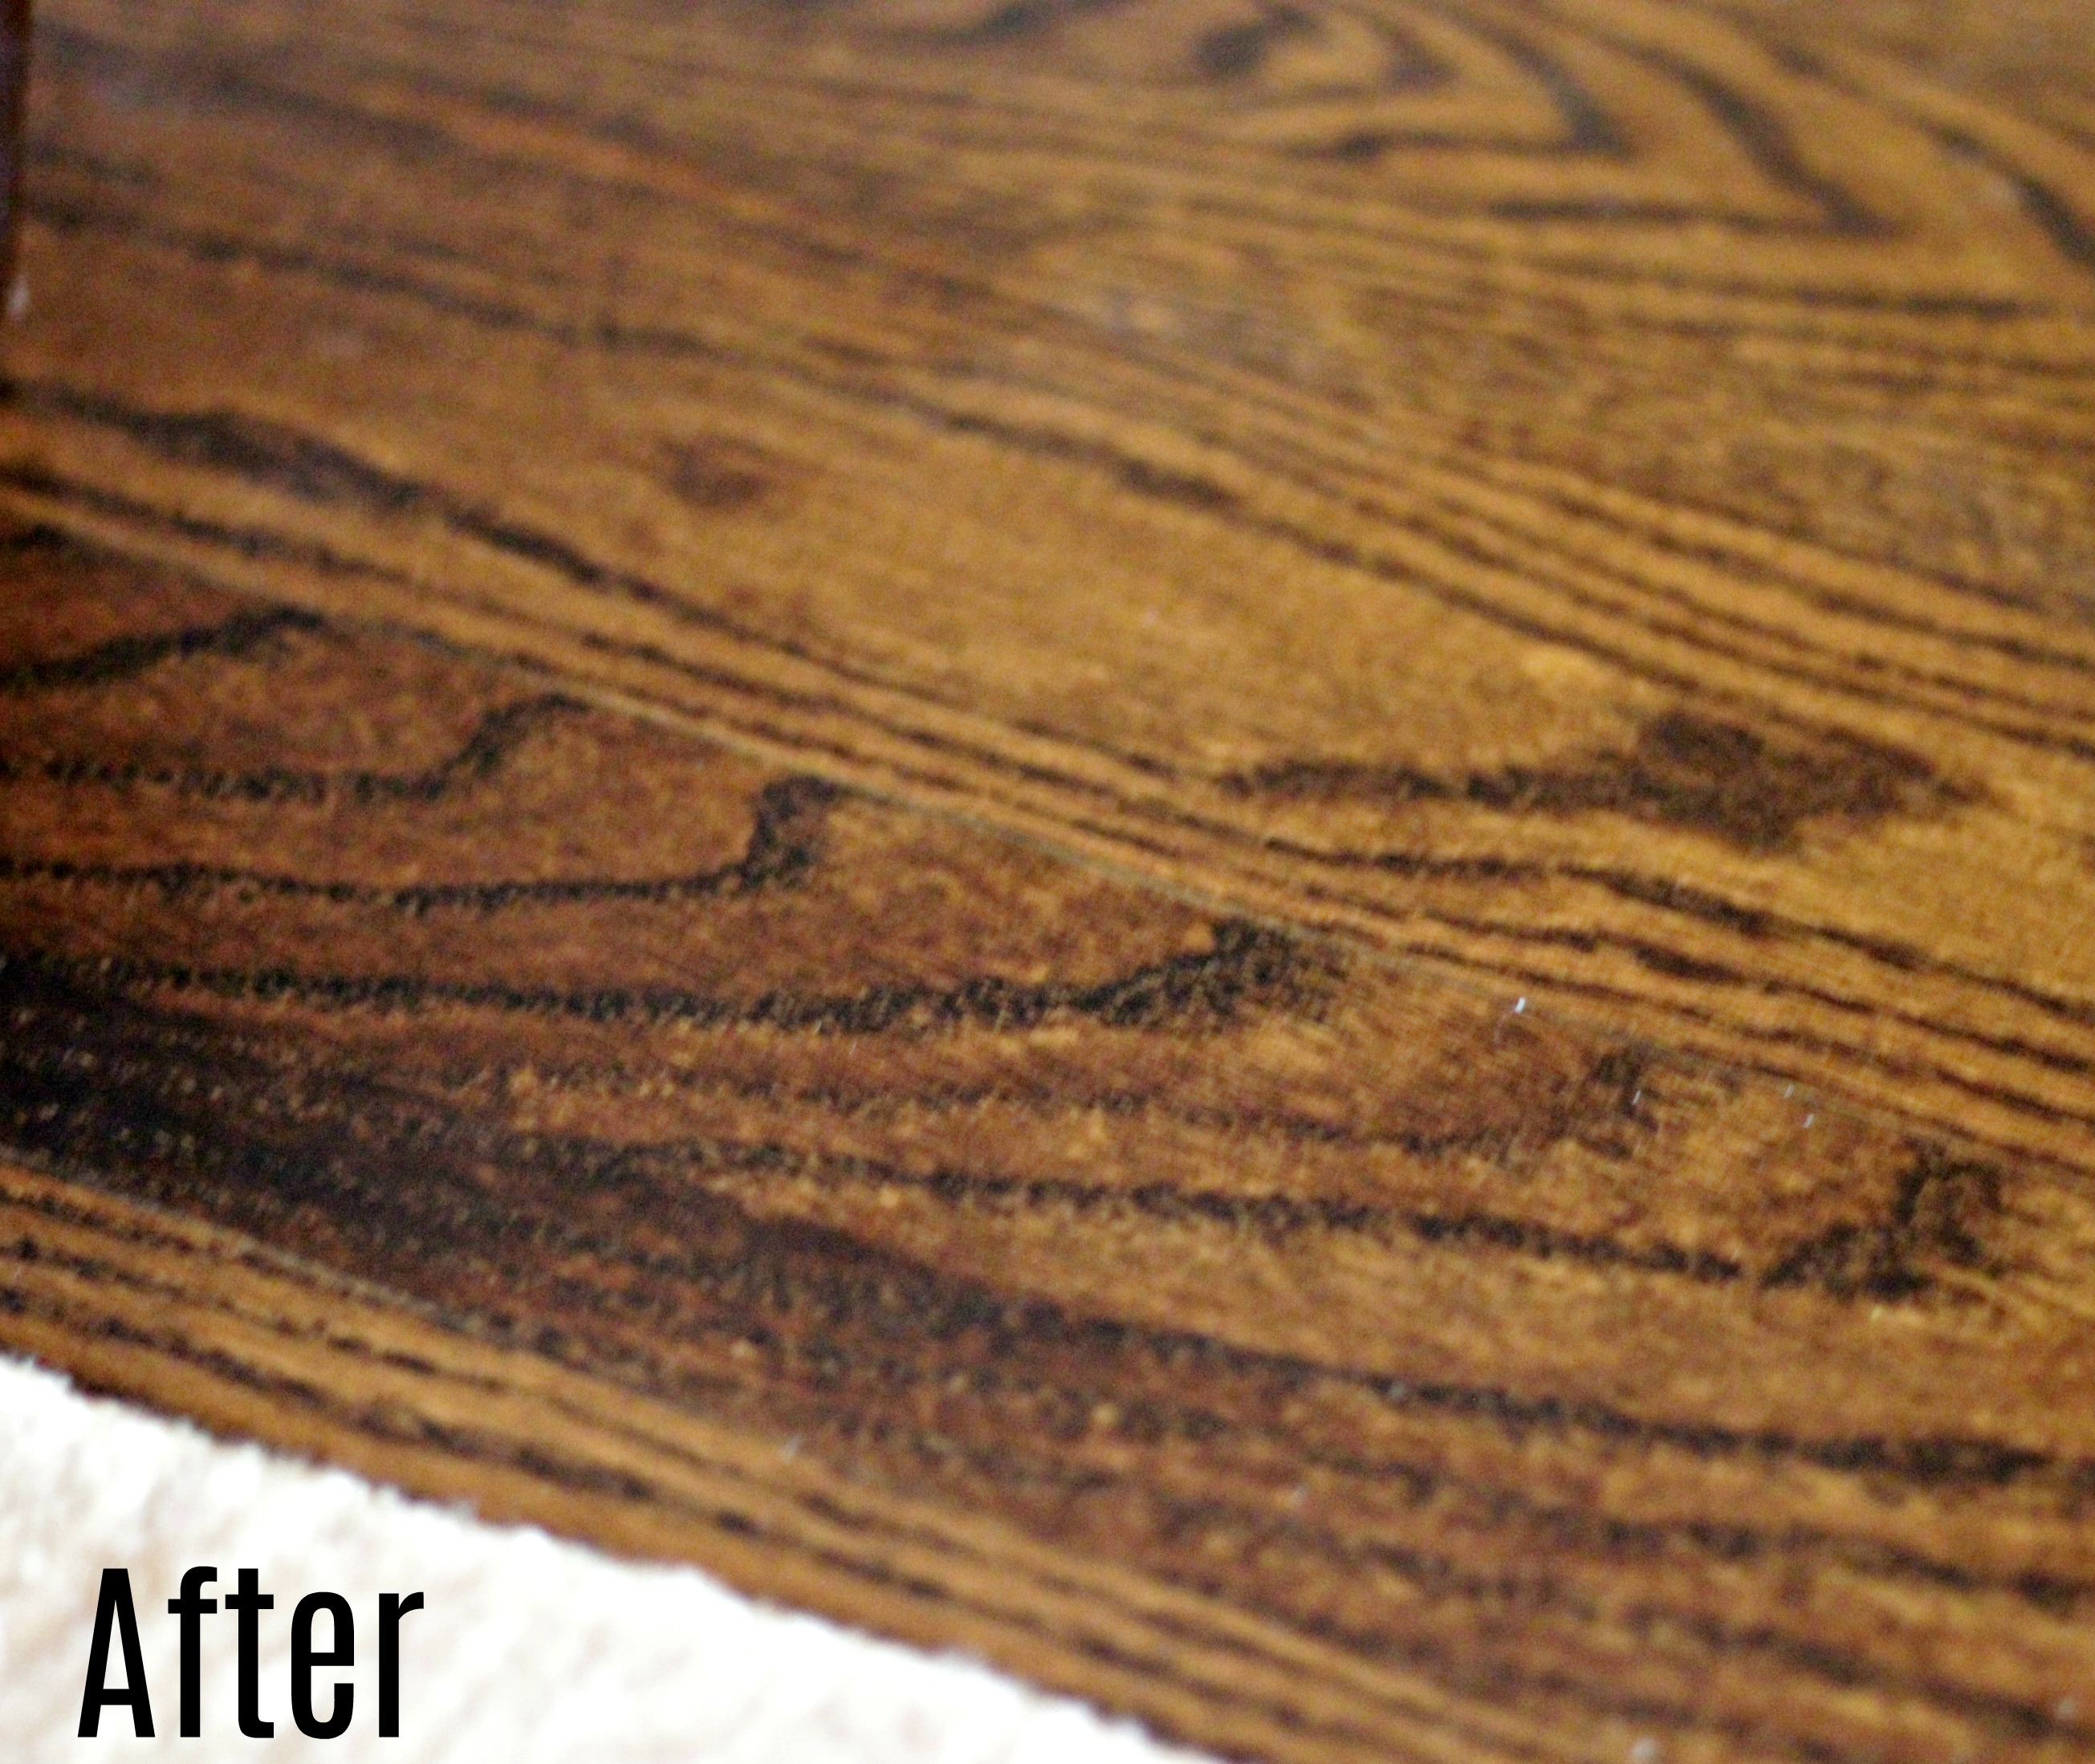 How To Remove Scentsy Wax From Wood Floor Carpet Vidalondon